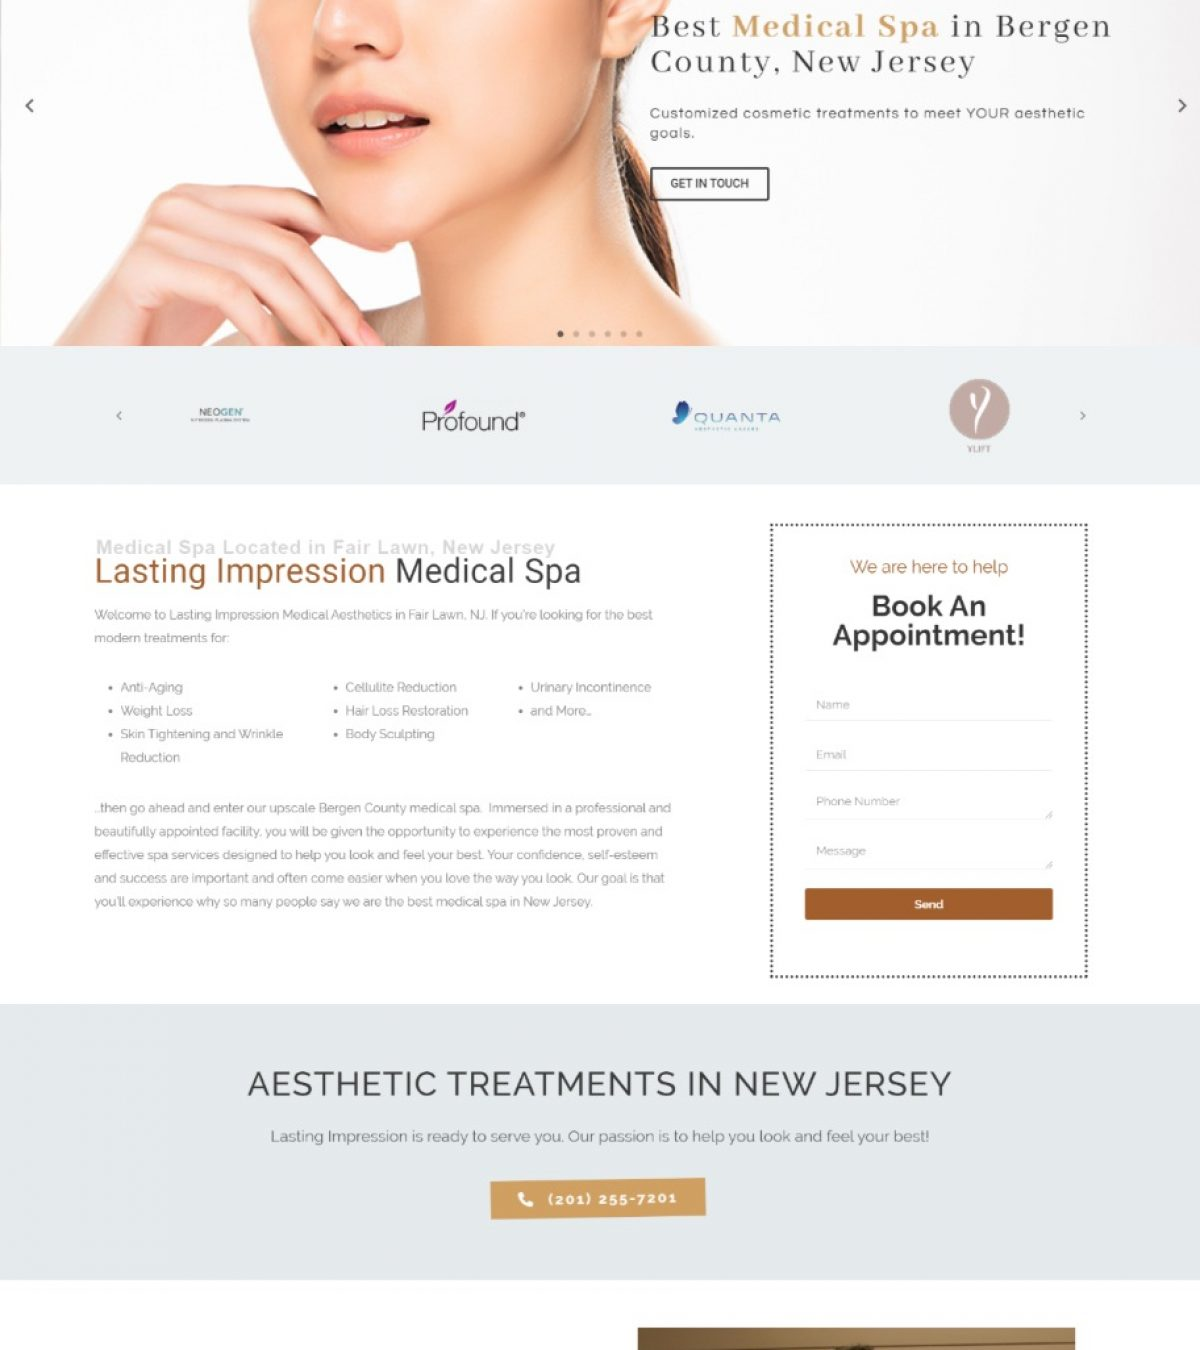 bergen county medical spa by mtbstrategy